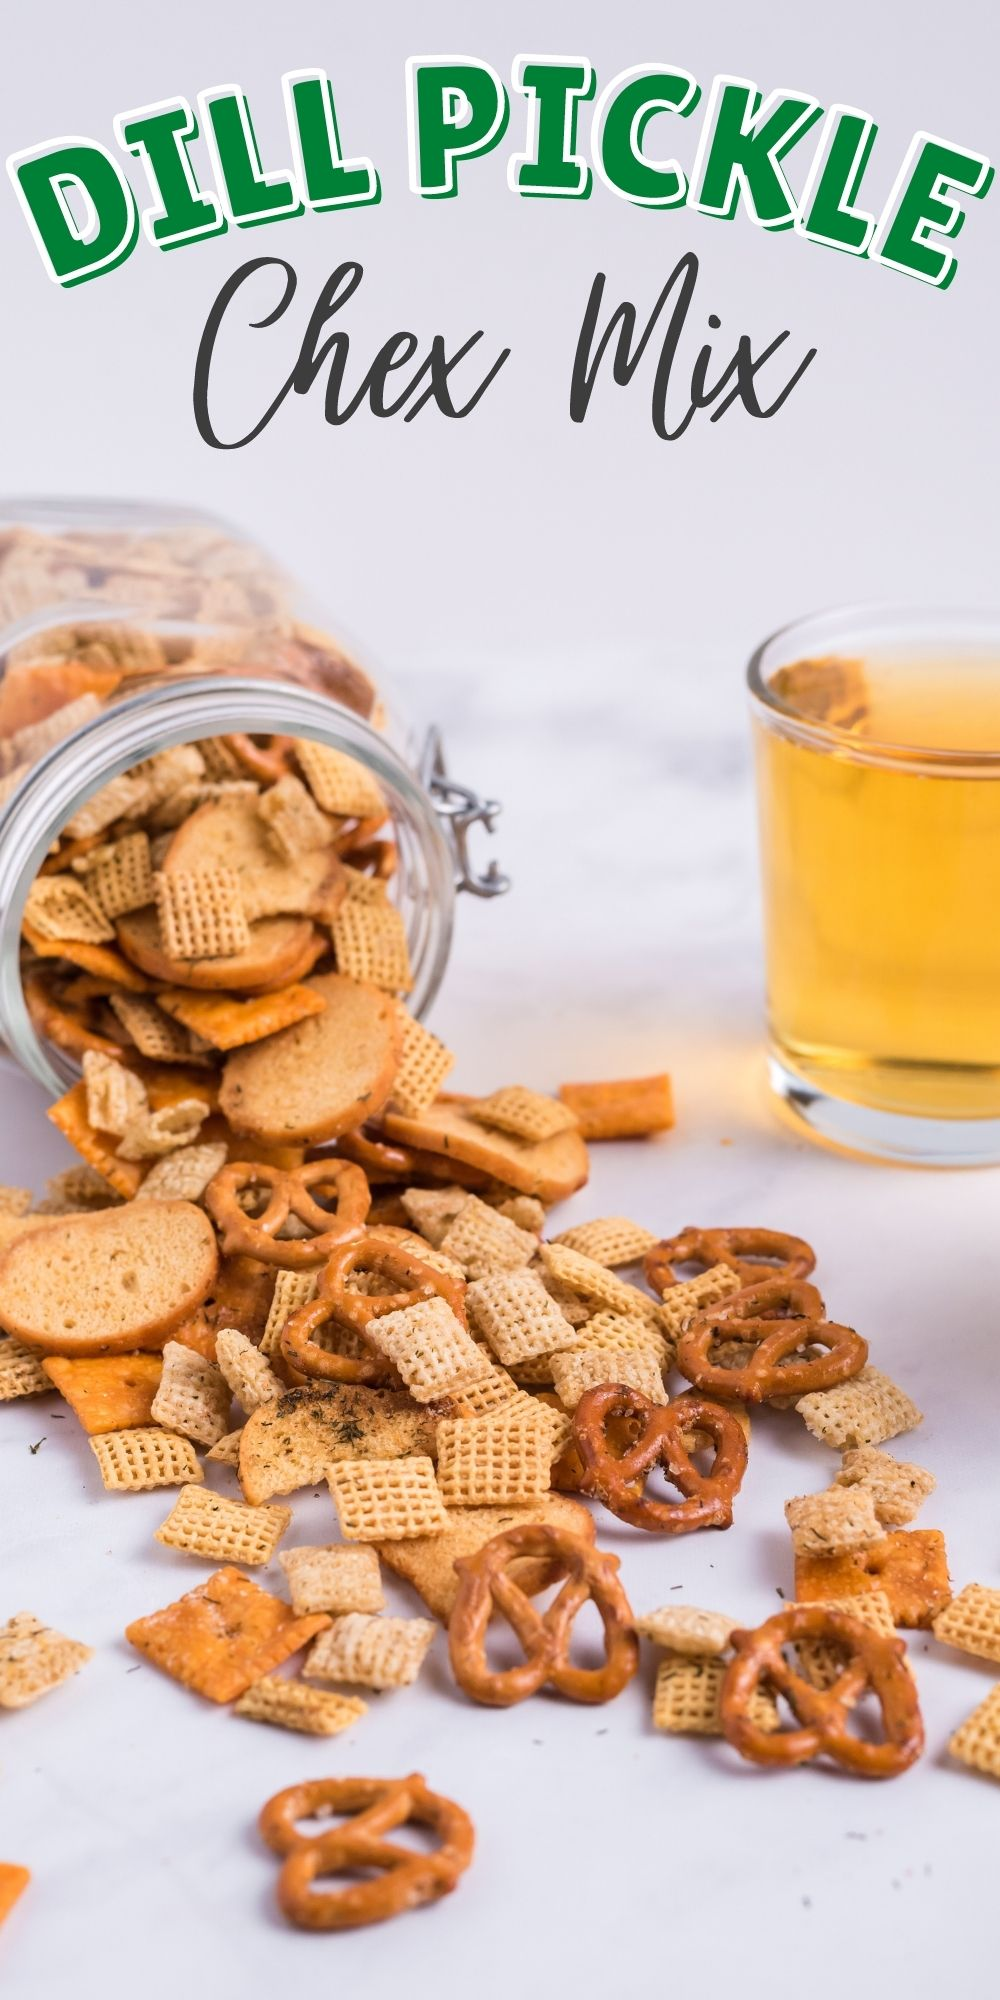 This homemade Dill Pickle Chex Mix recipe is a brilliant savory variation to the well-known sweet Chex mix recipe. via @familyfresh